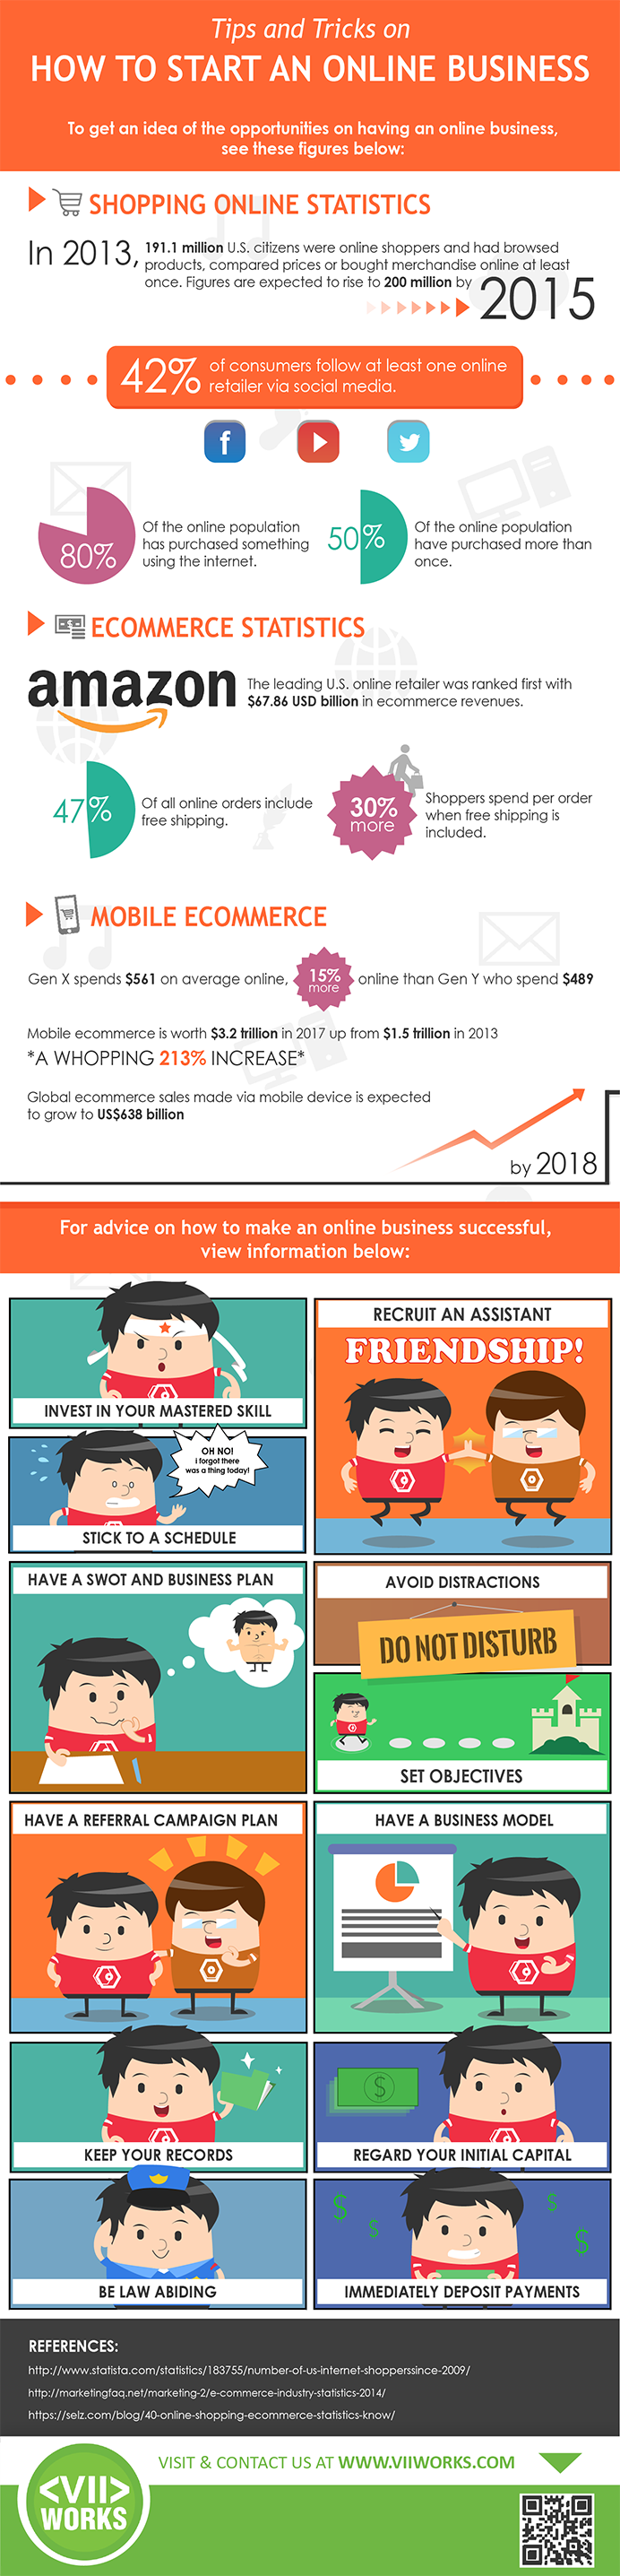 How to Start an Online Business Infographic